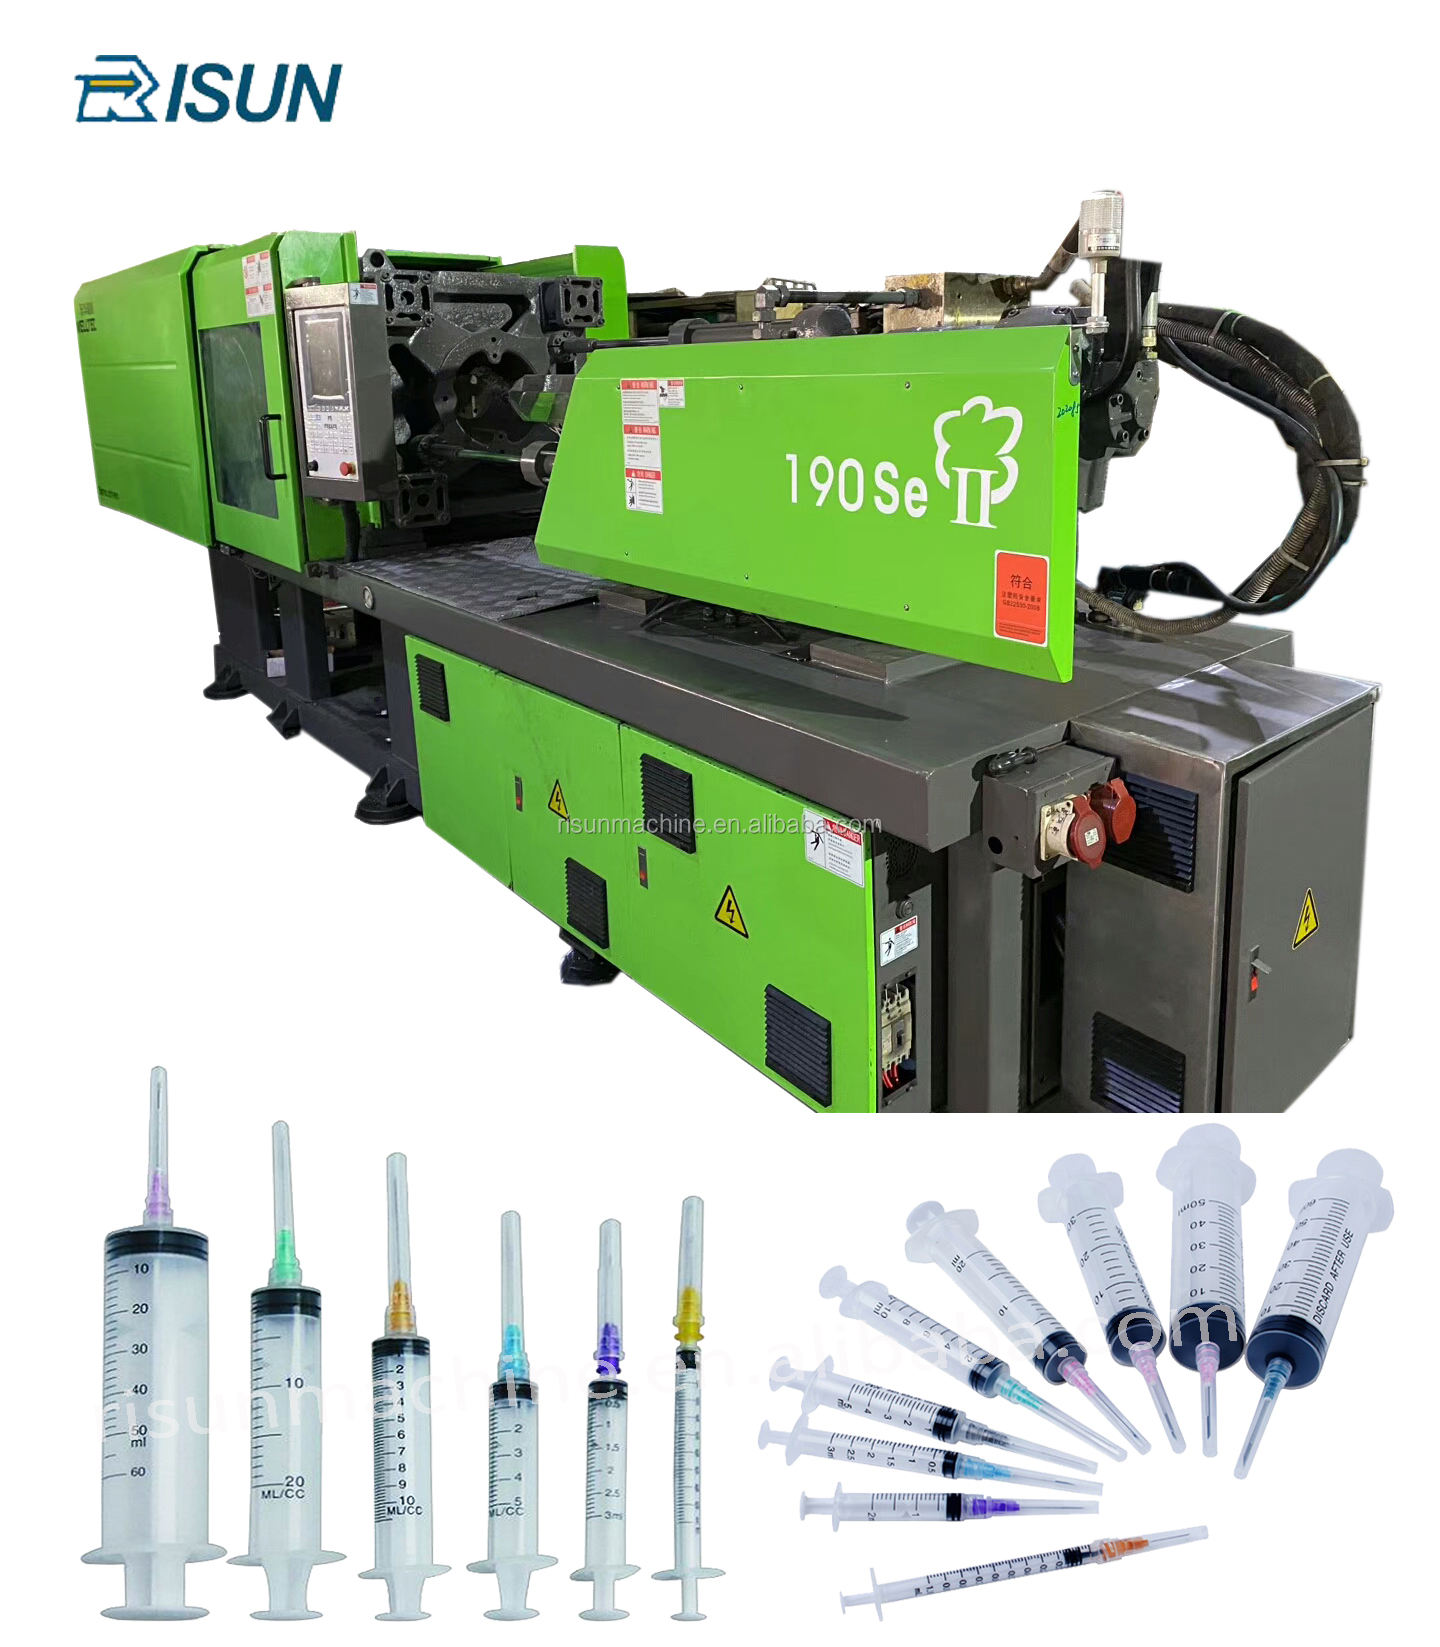 Donghua 190se II Medical disposable syringe making machine price/ injection molding machine and injection mould complete line